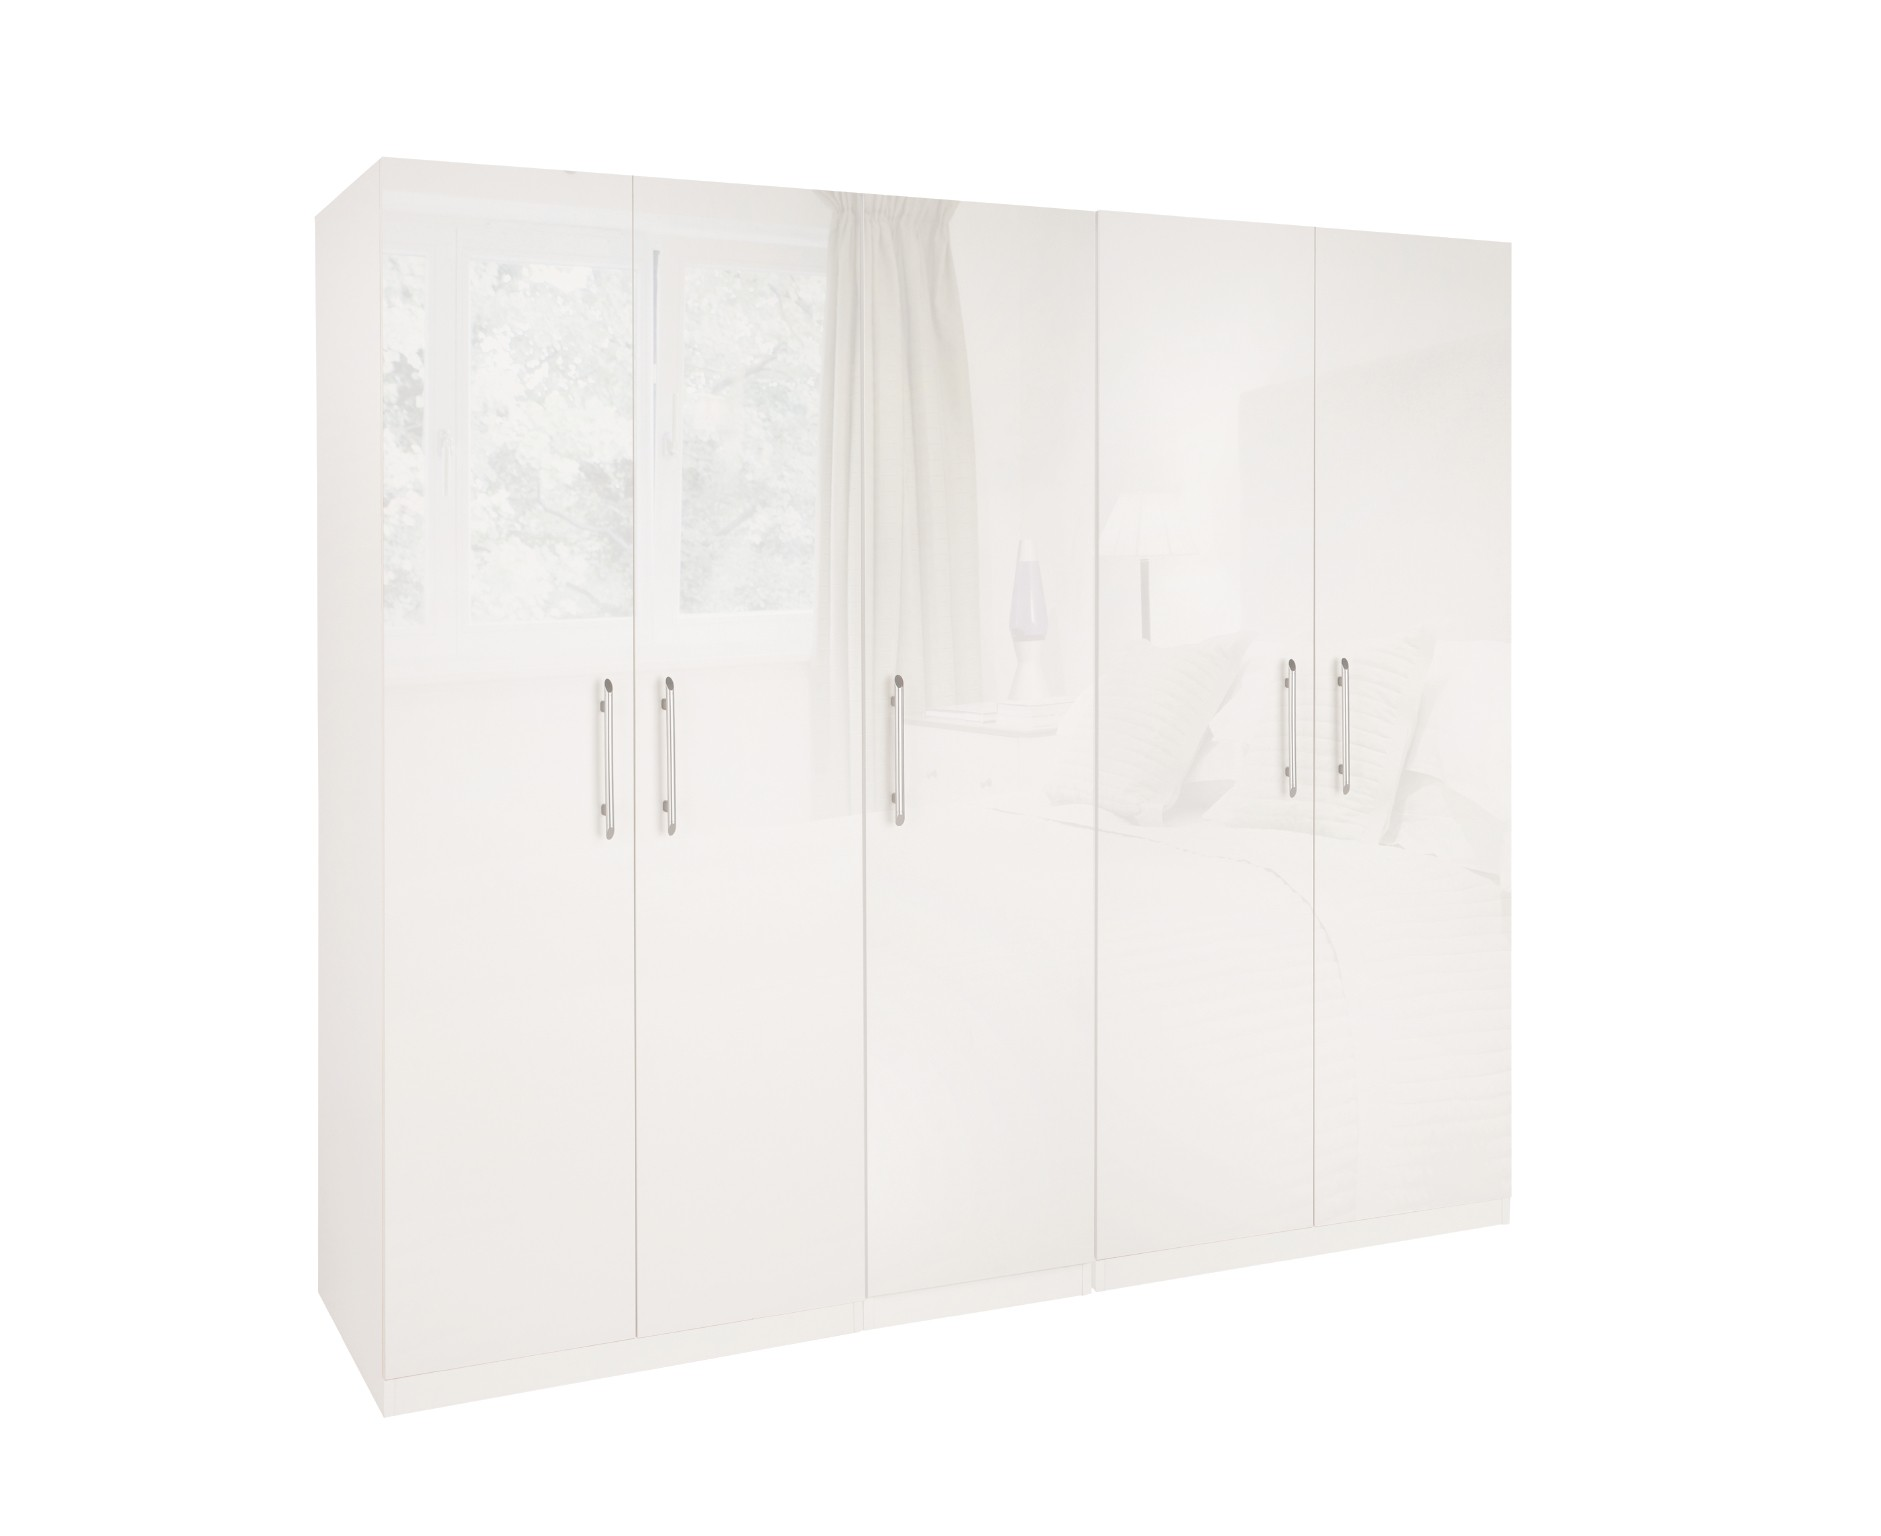 Angel High Gloss 5 Door Wardrobe